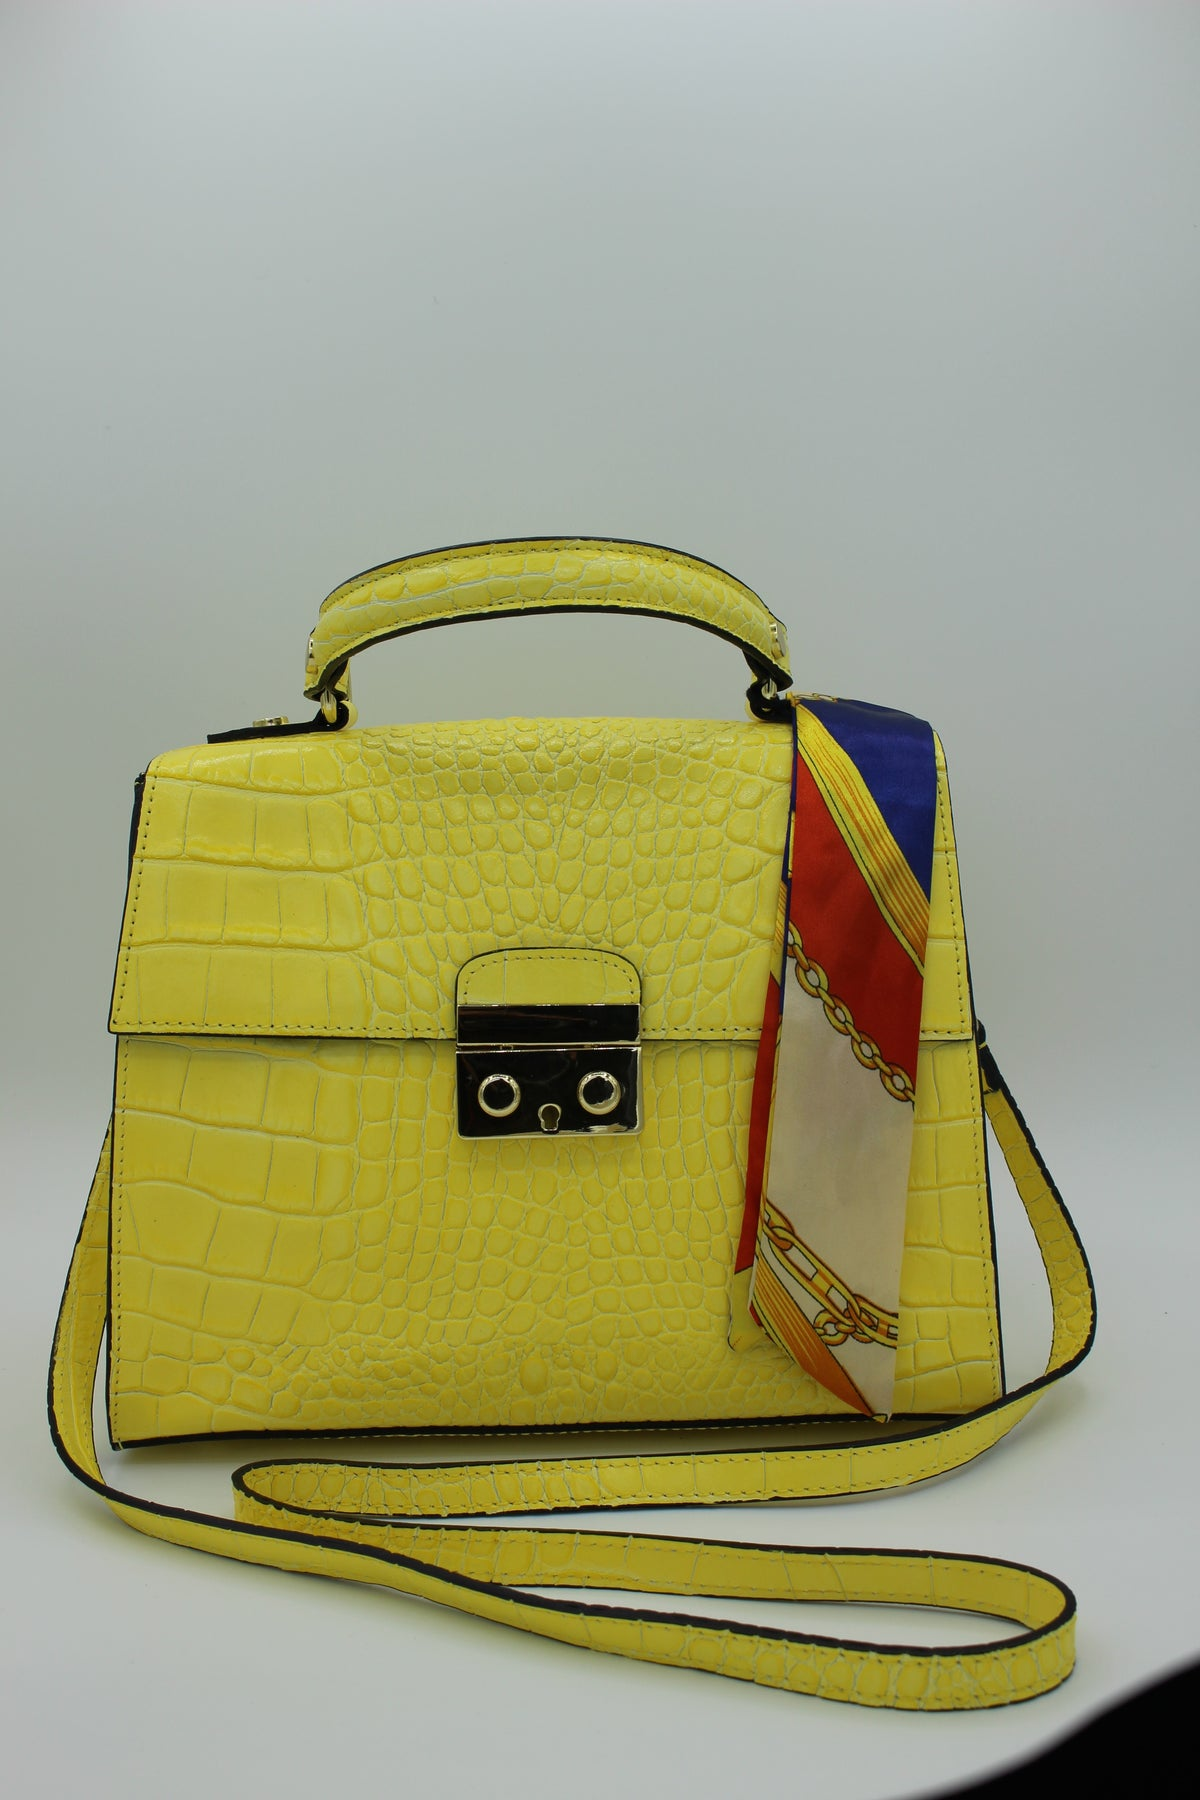 Yellow Crocodile embossed leather bag with scarf accessory